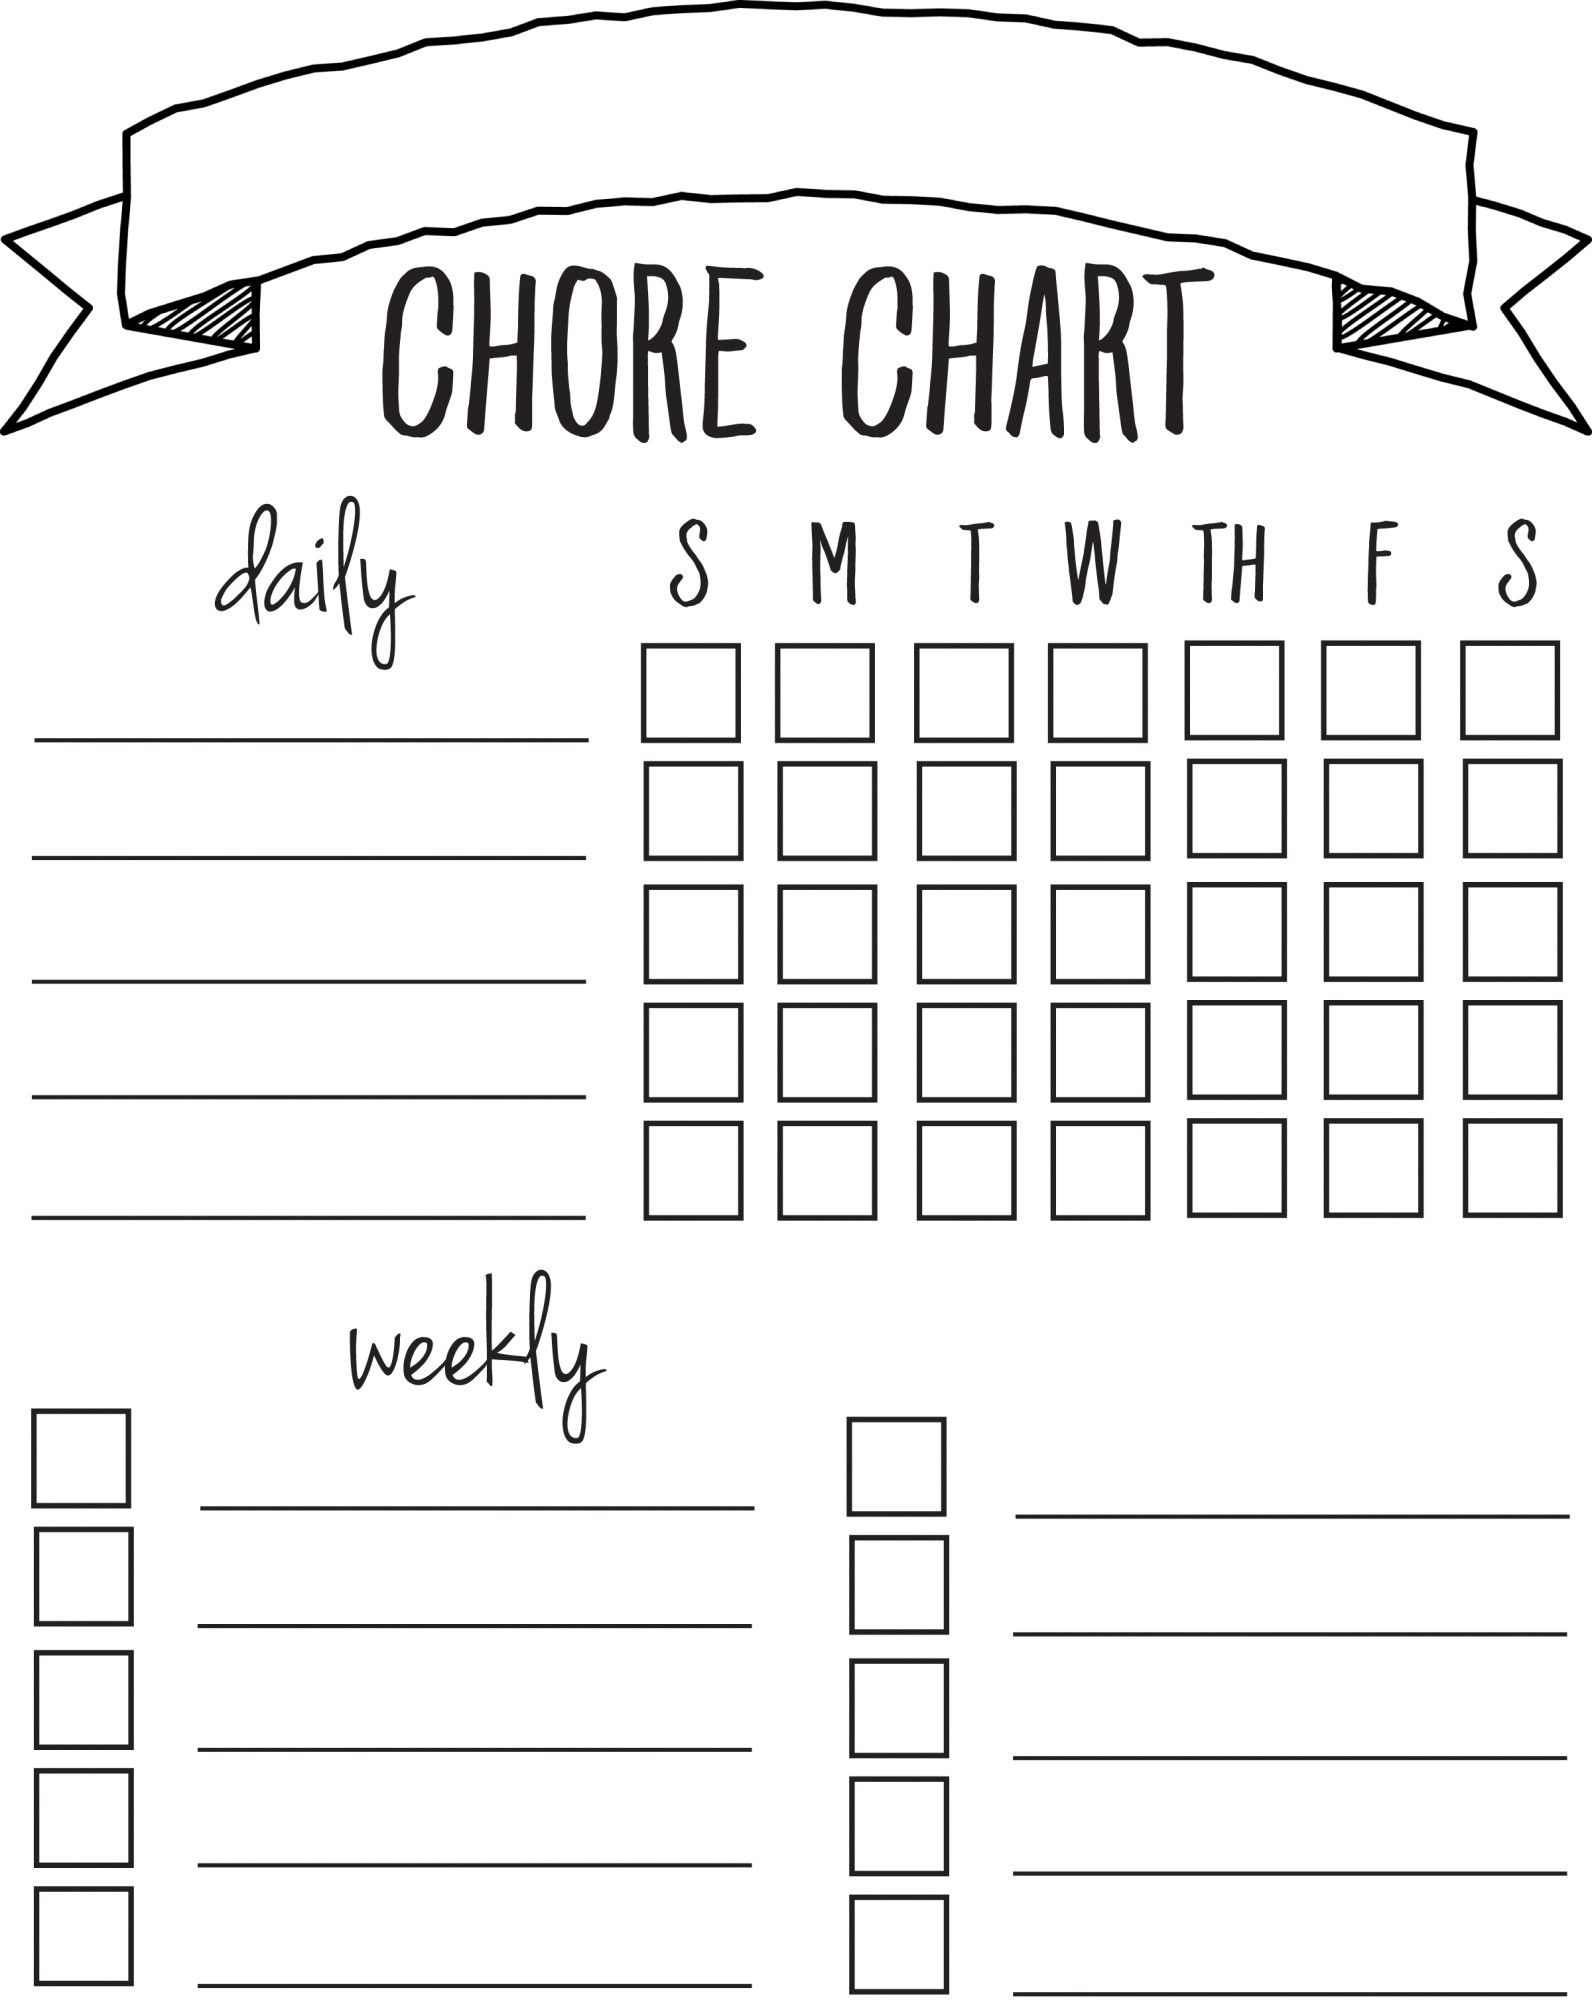 Diy Printable Chore Chart | Free Printables Nov/feb | Pinterest - Free Printable Chore Chart Ideas